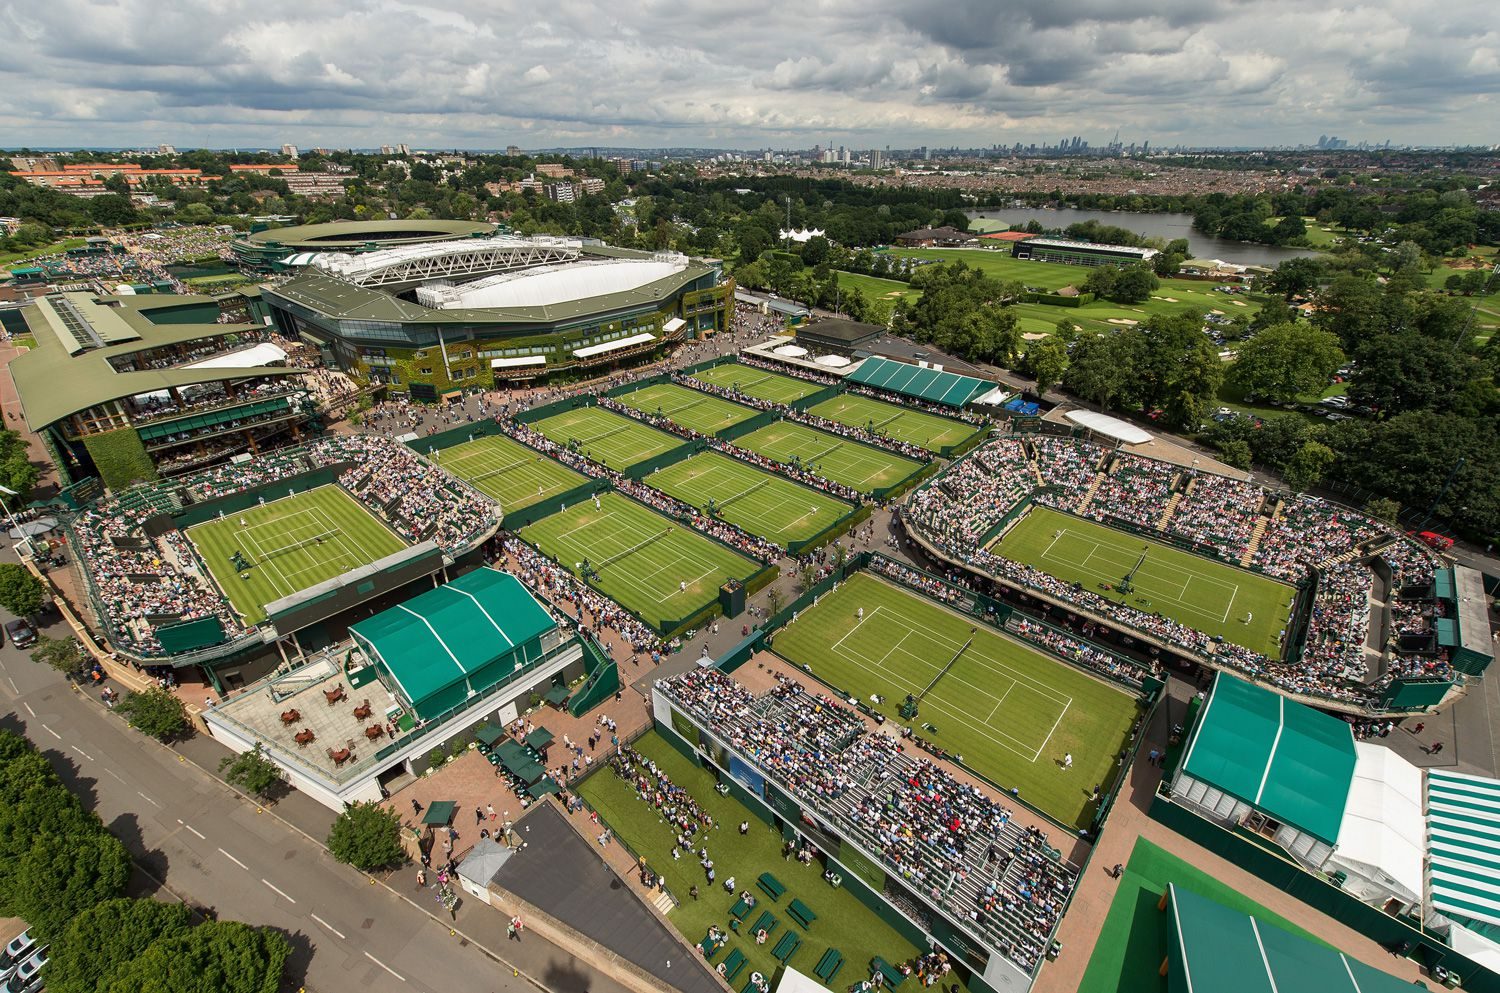 How To Get Wimbledon Tennis Championship Tickets